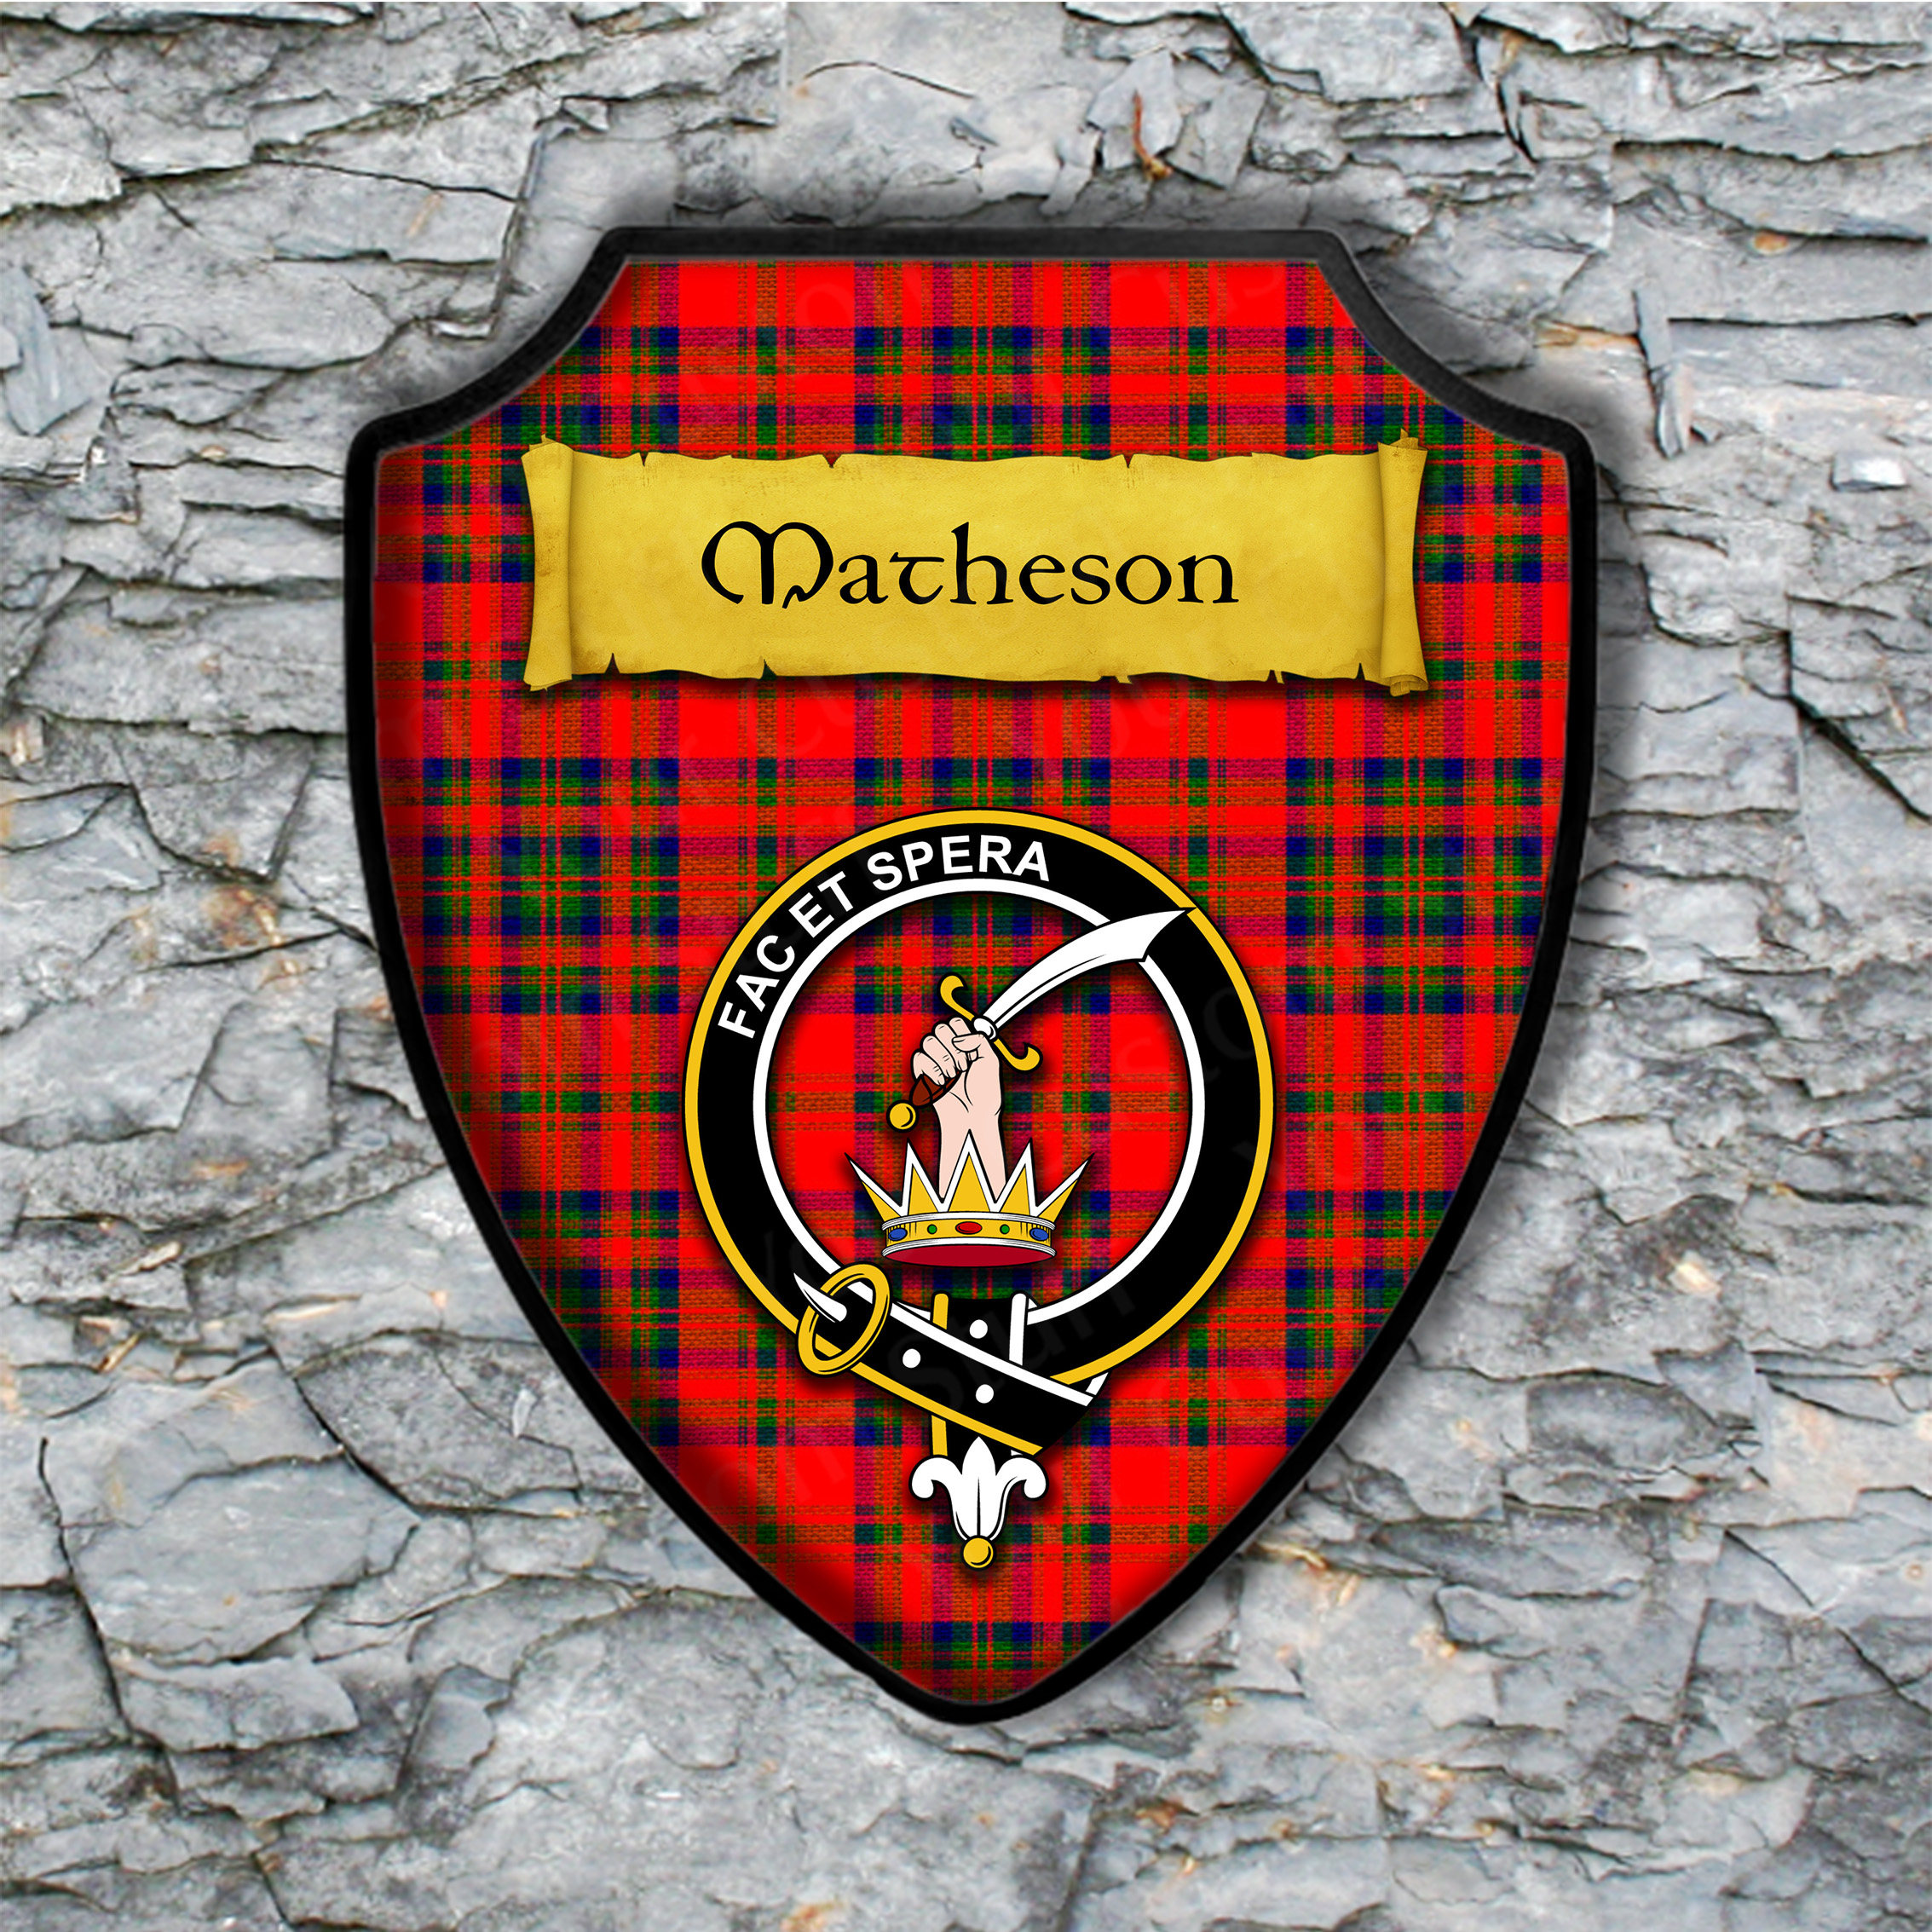 Matheson Shield Plaque With Scottish Clan Coat Of Arms